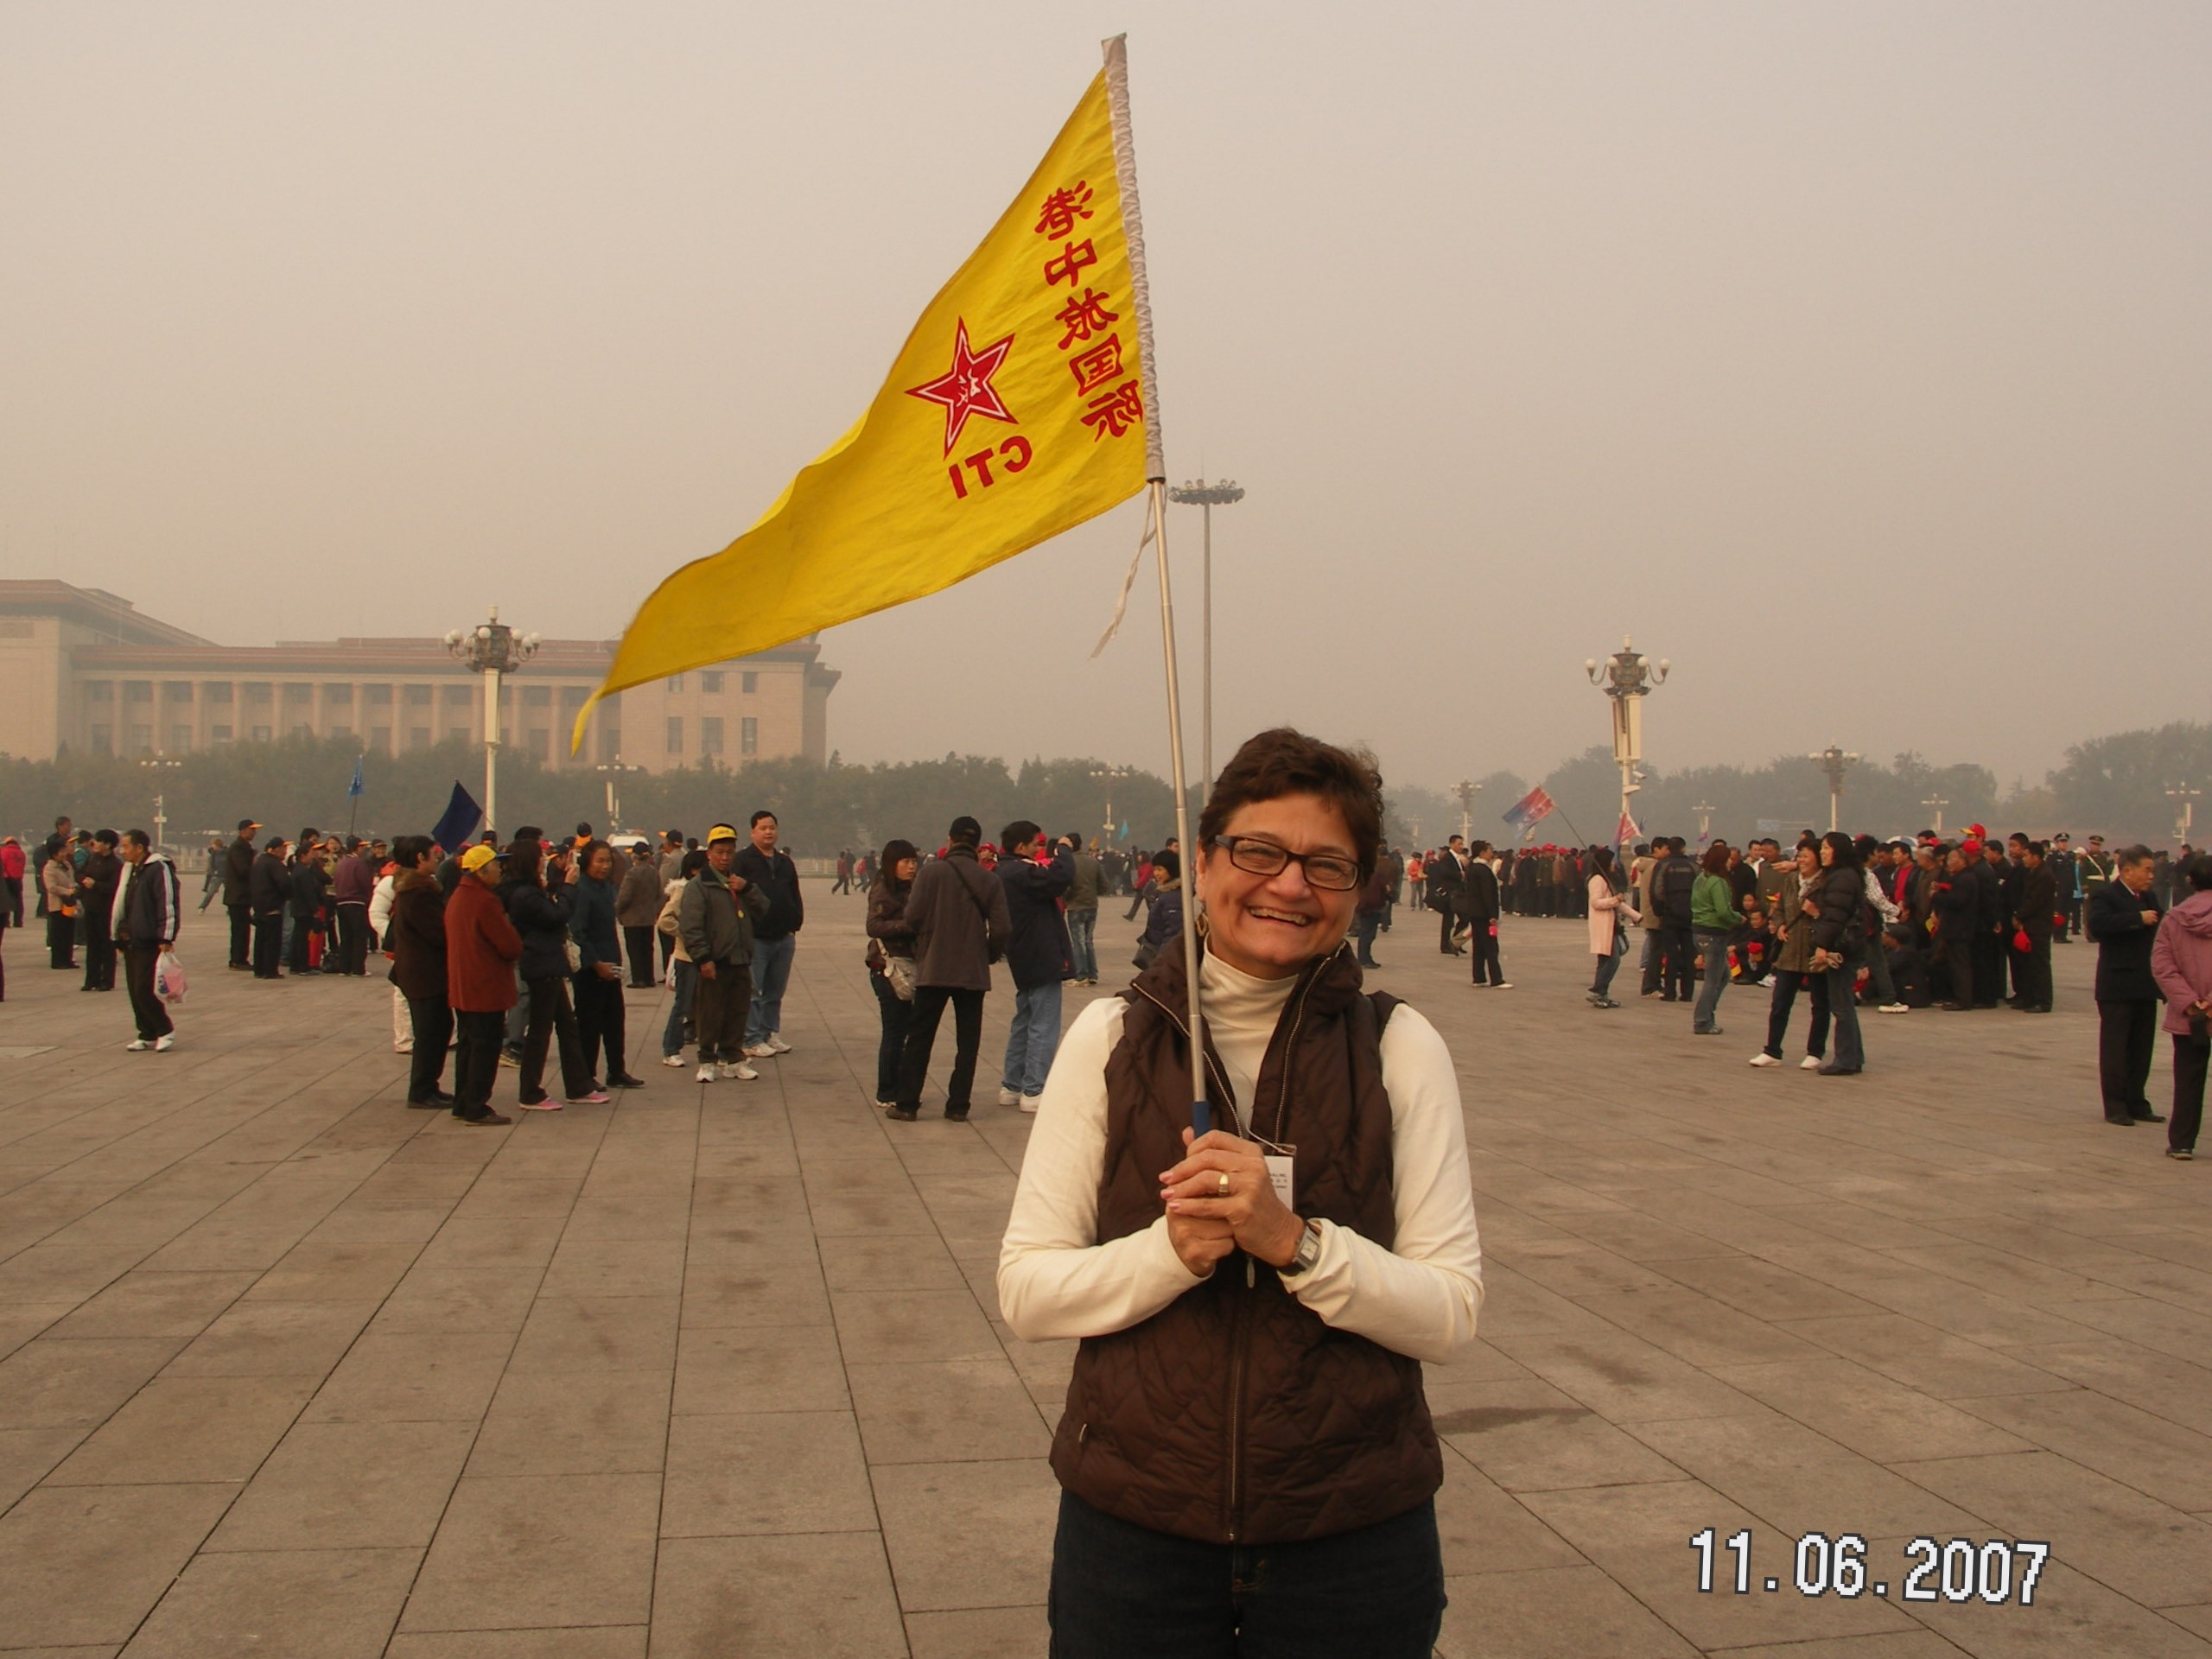 Yes, that is me in Tiananmen Square...with the guide's flag...more than scary given my navigational skills! I got us lost in Bejing and lost our souvenirs from the Mao museum all on day one!